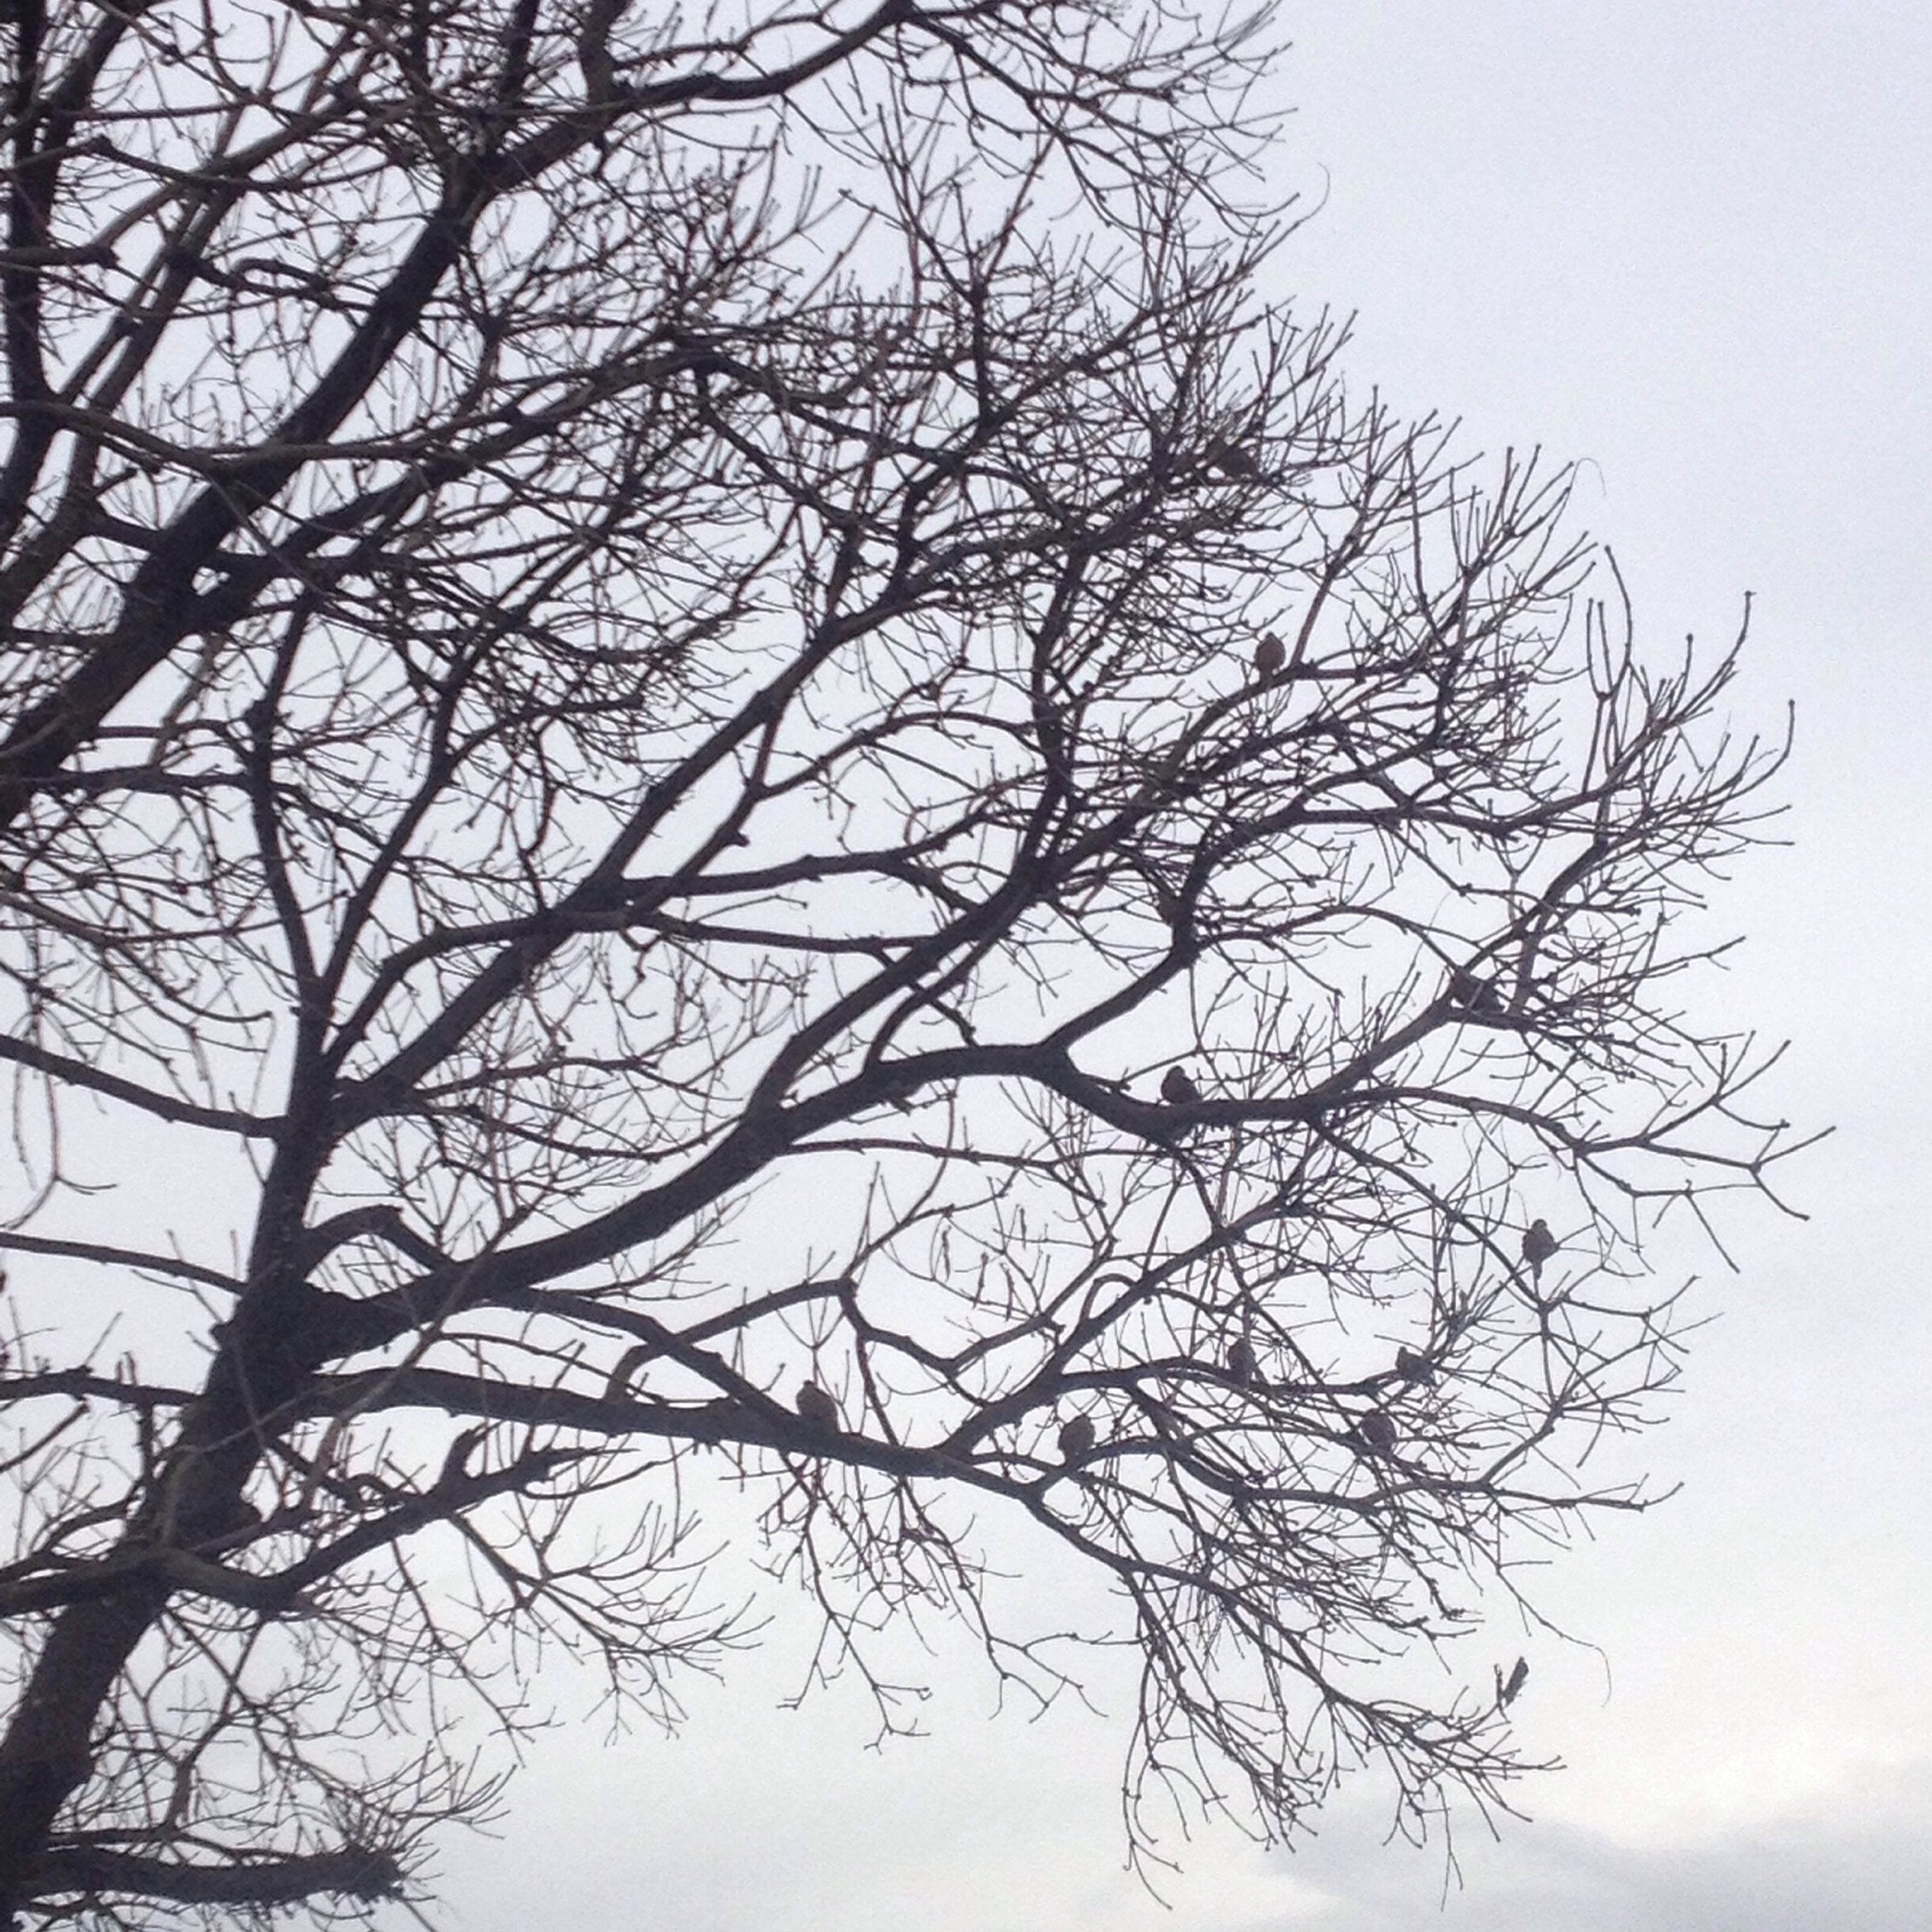 bare tree, branch, tree, low angle view, tranquility, clear sky, nature, sky, beauty in nature, scenics, outdoors, tranquil scene, no people, silhouette, day, growth, tree trunk, dead plant, single tree, dusk